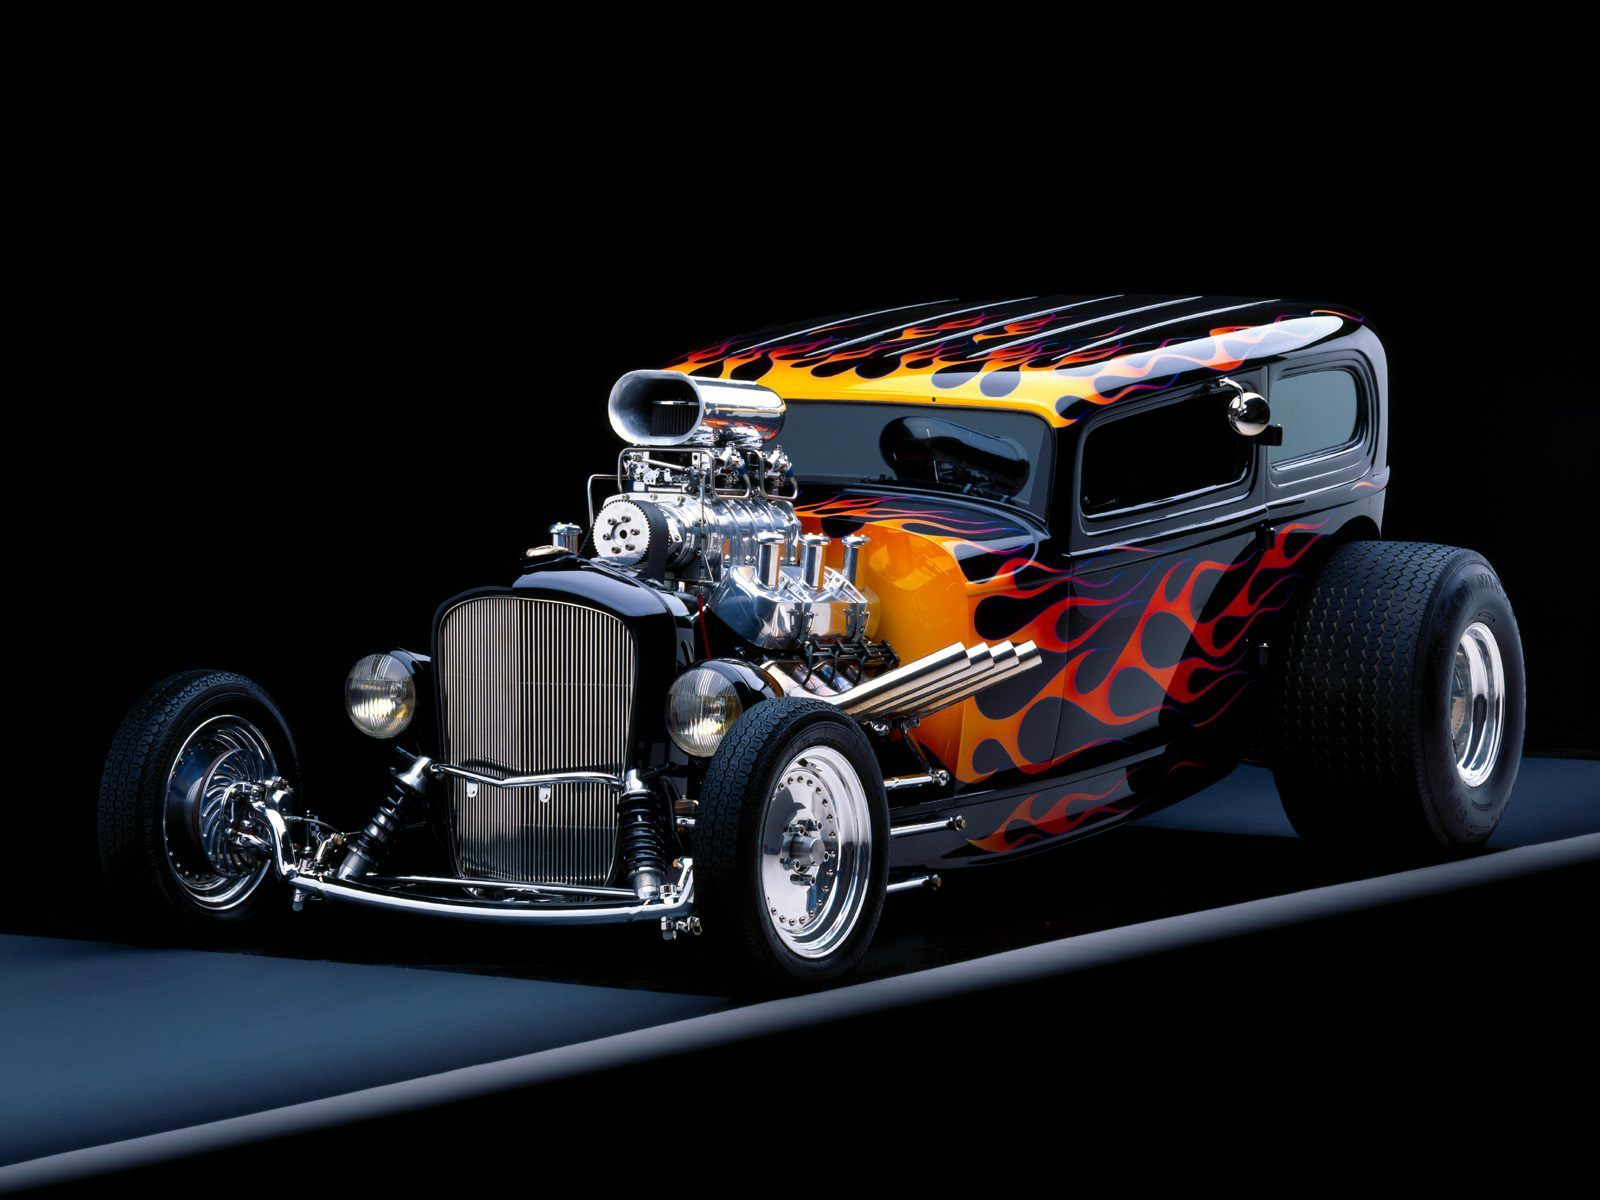 The Mind Blowing World Of Custom Rides Autospace Hot Rods Cars Muscle Hot Rods Cars Ford Hot Rod